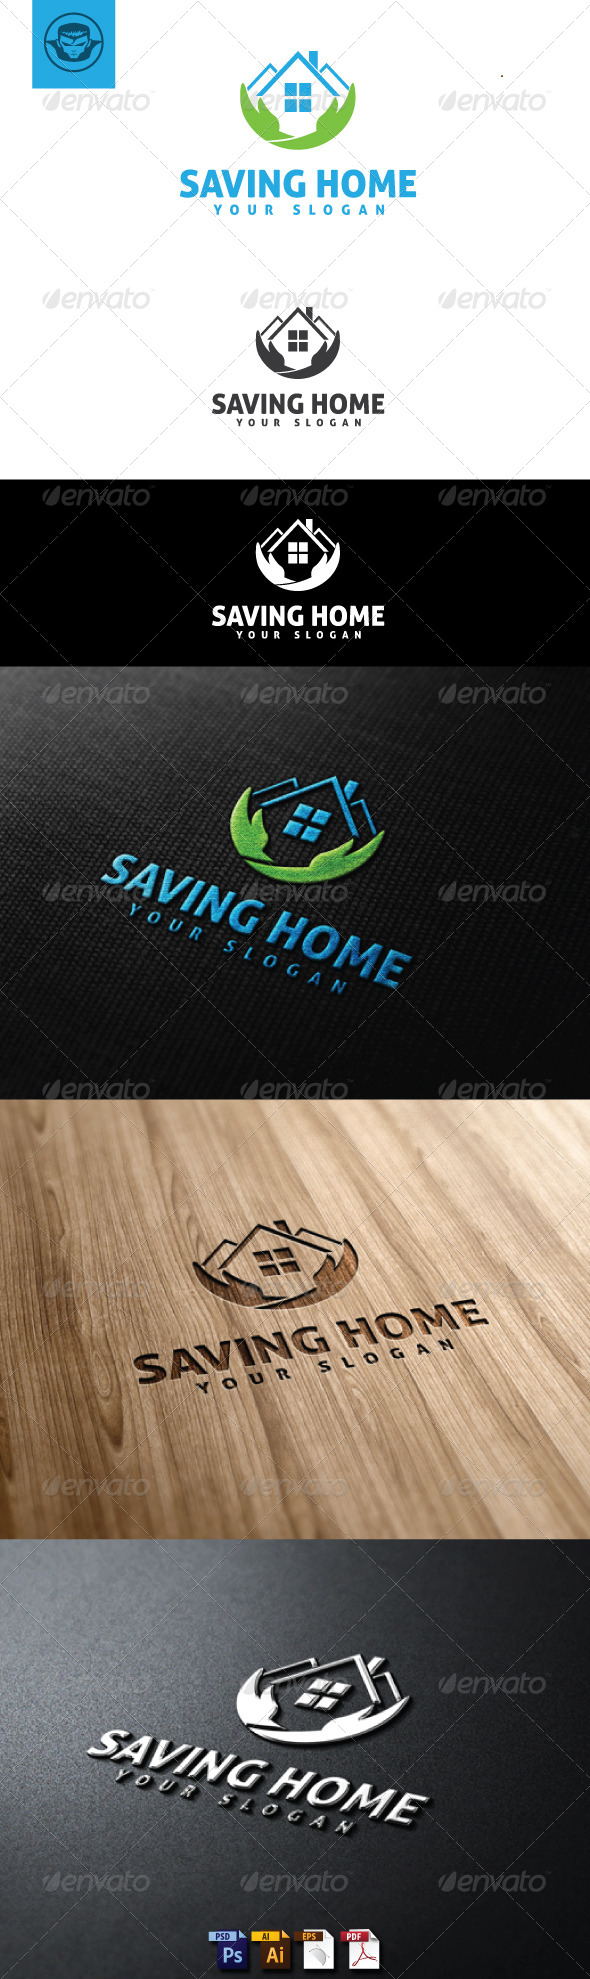 Saving Home Logo Template - Buildings Logo Templates